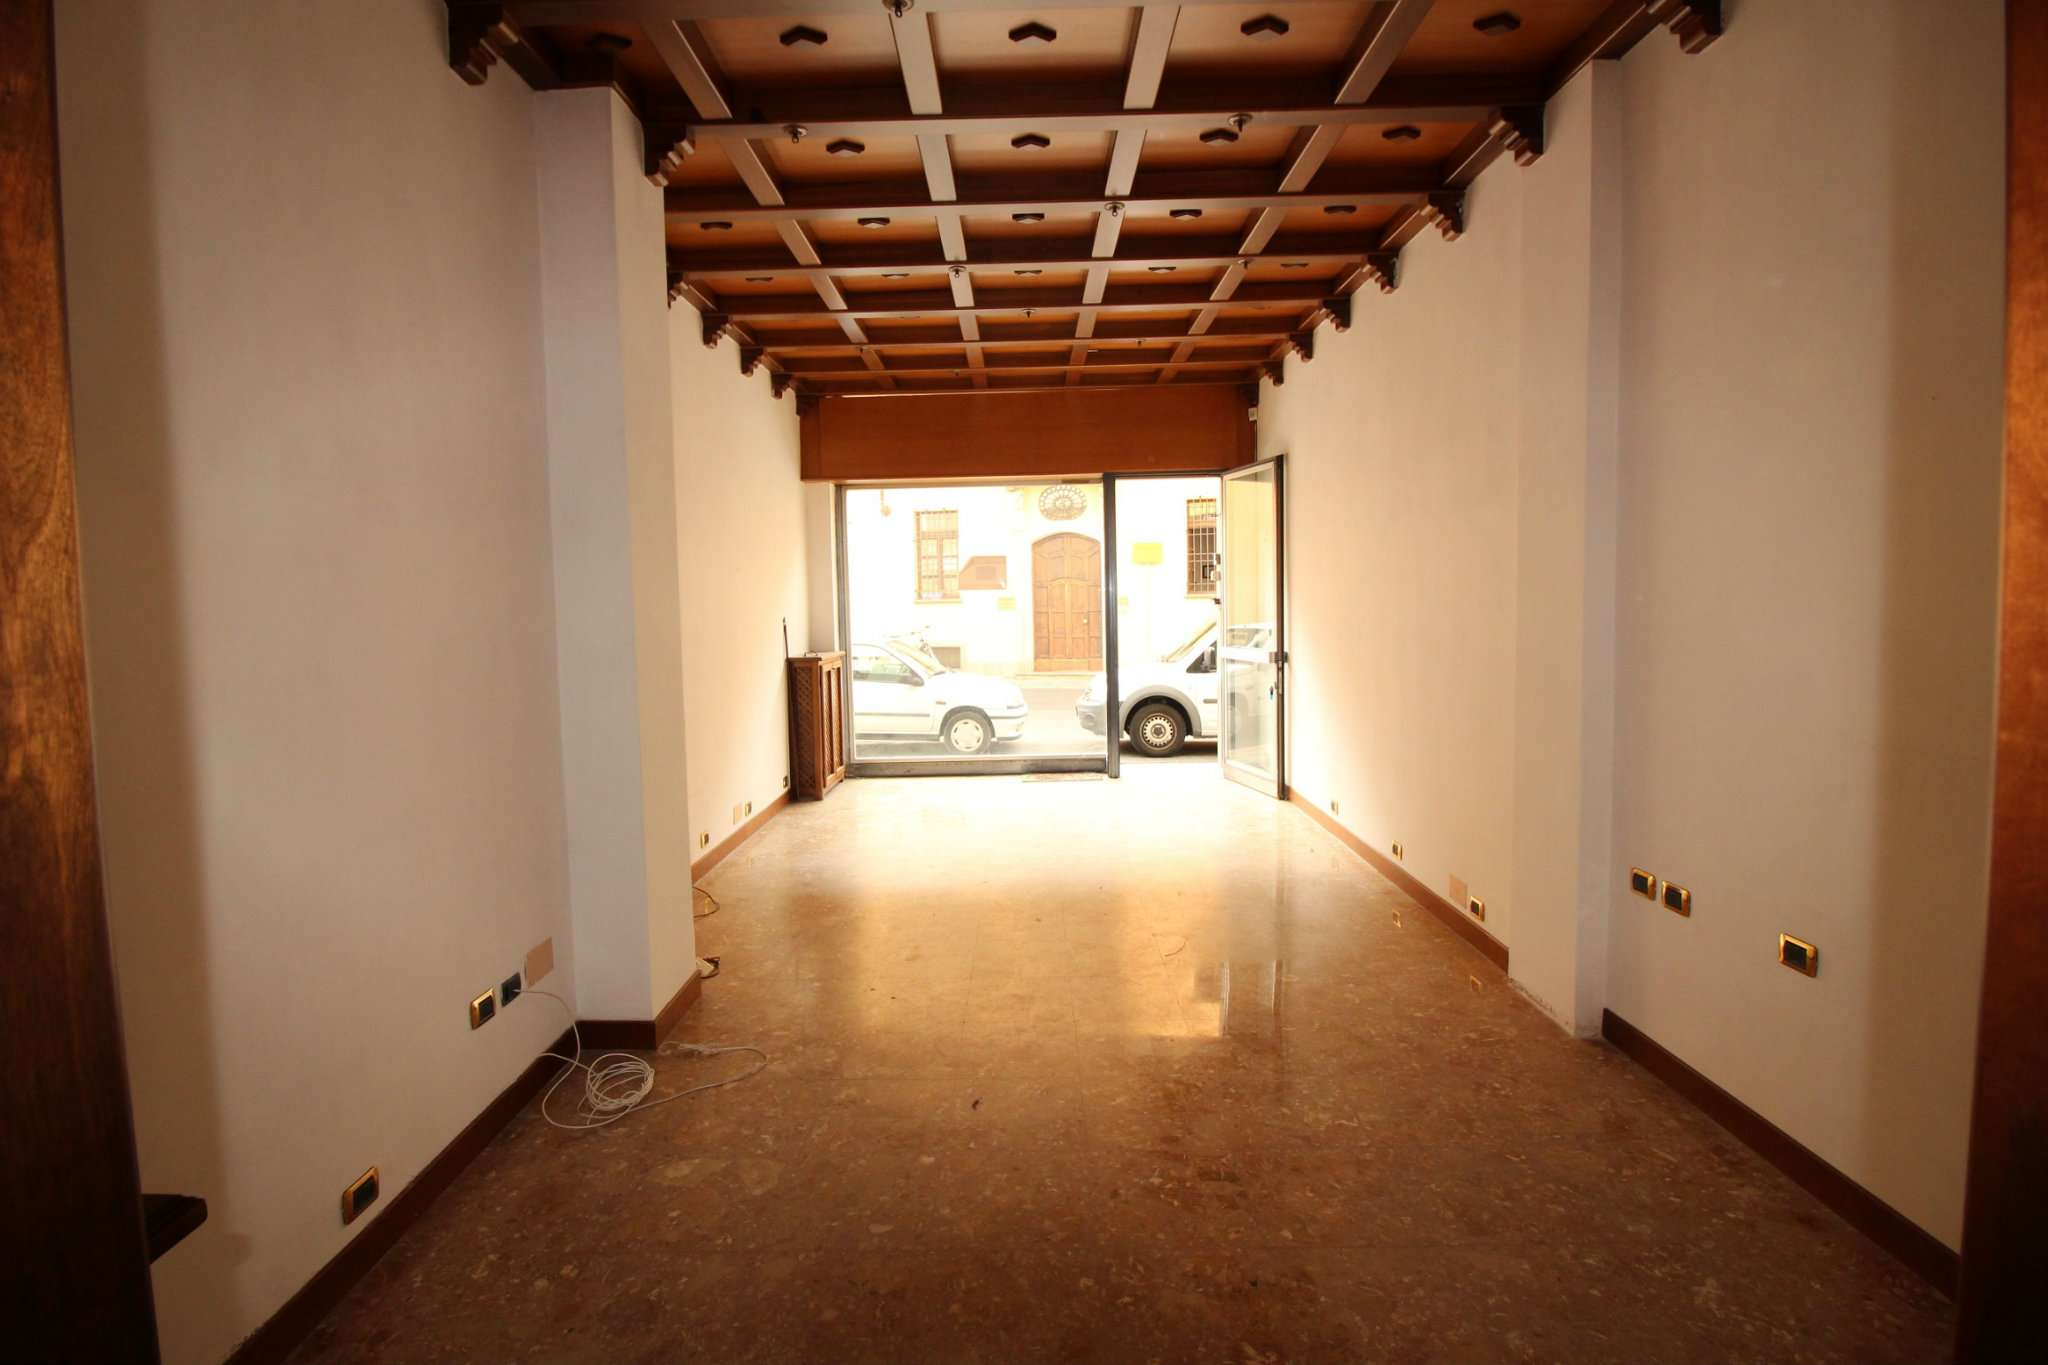 Immobile Commerciale in affitto a Vercelli-http://media.getrix.it/1/6846/2577160420_hd.jpg